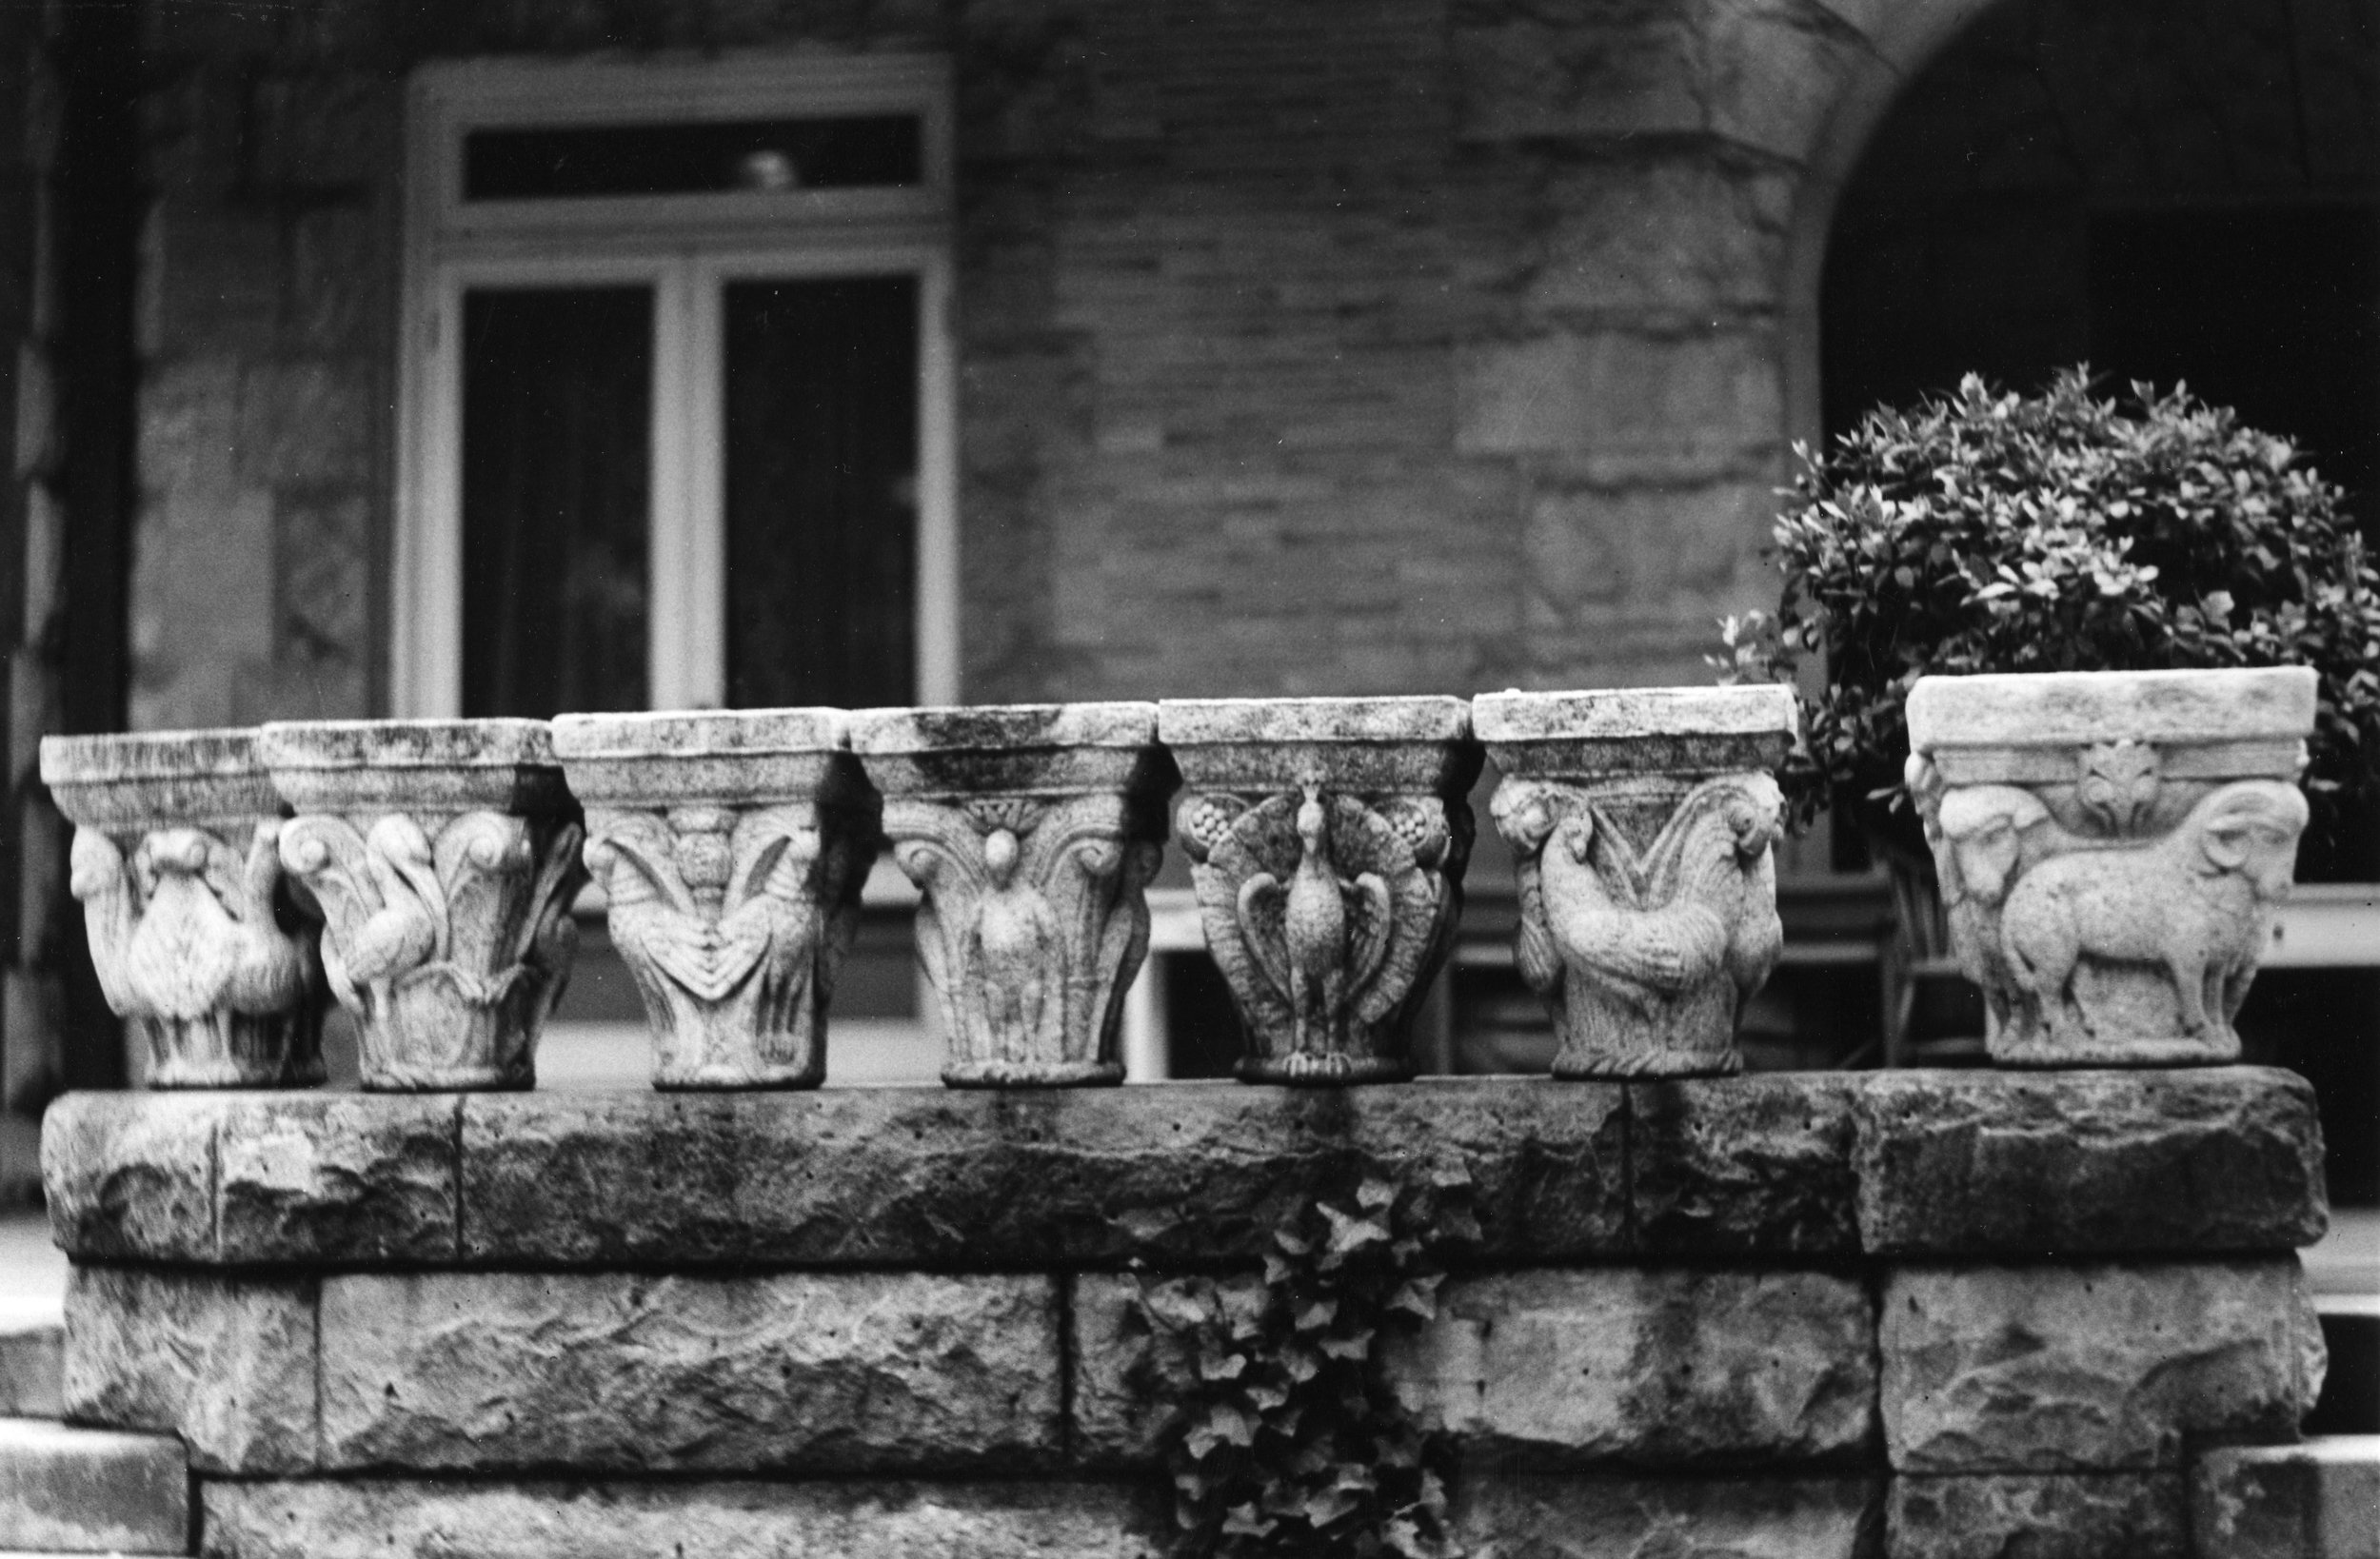 Figure 5: Seven capitals, intended for Glencairn's cloister, are lined up on the balustrade of Cairnwood. Glencairn Museum Archives.